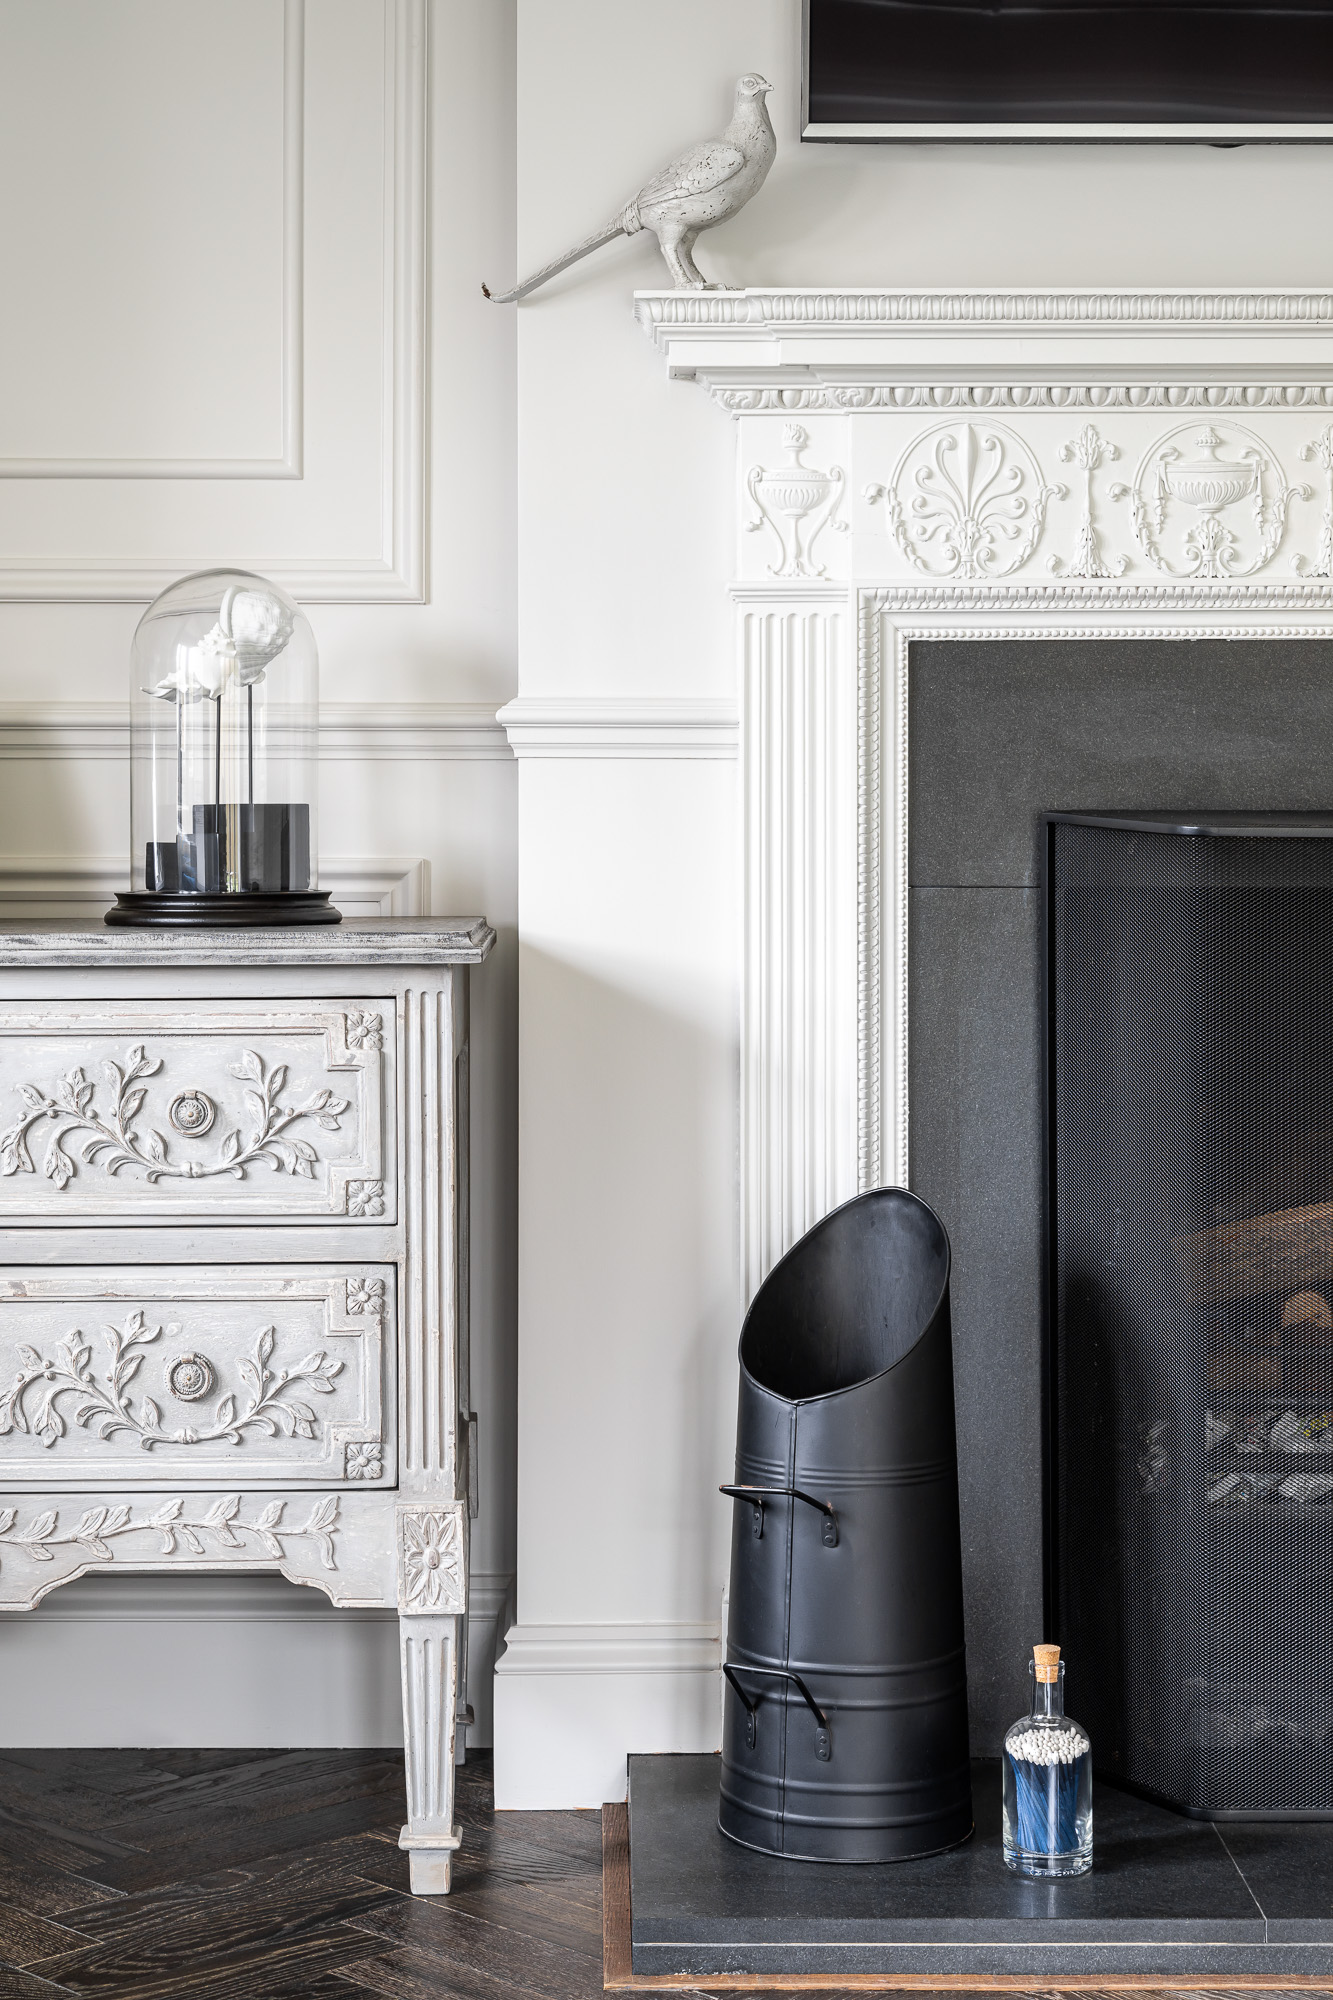 jonathan bond, interior photographer, ornate chest of drawers & white fireplace, harlow